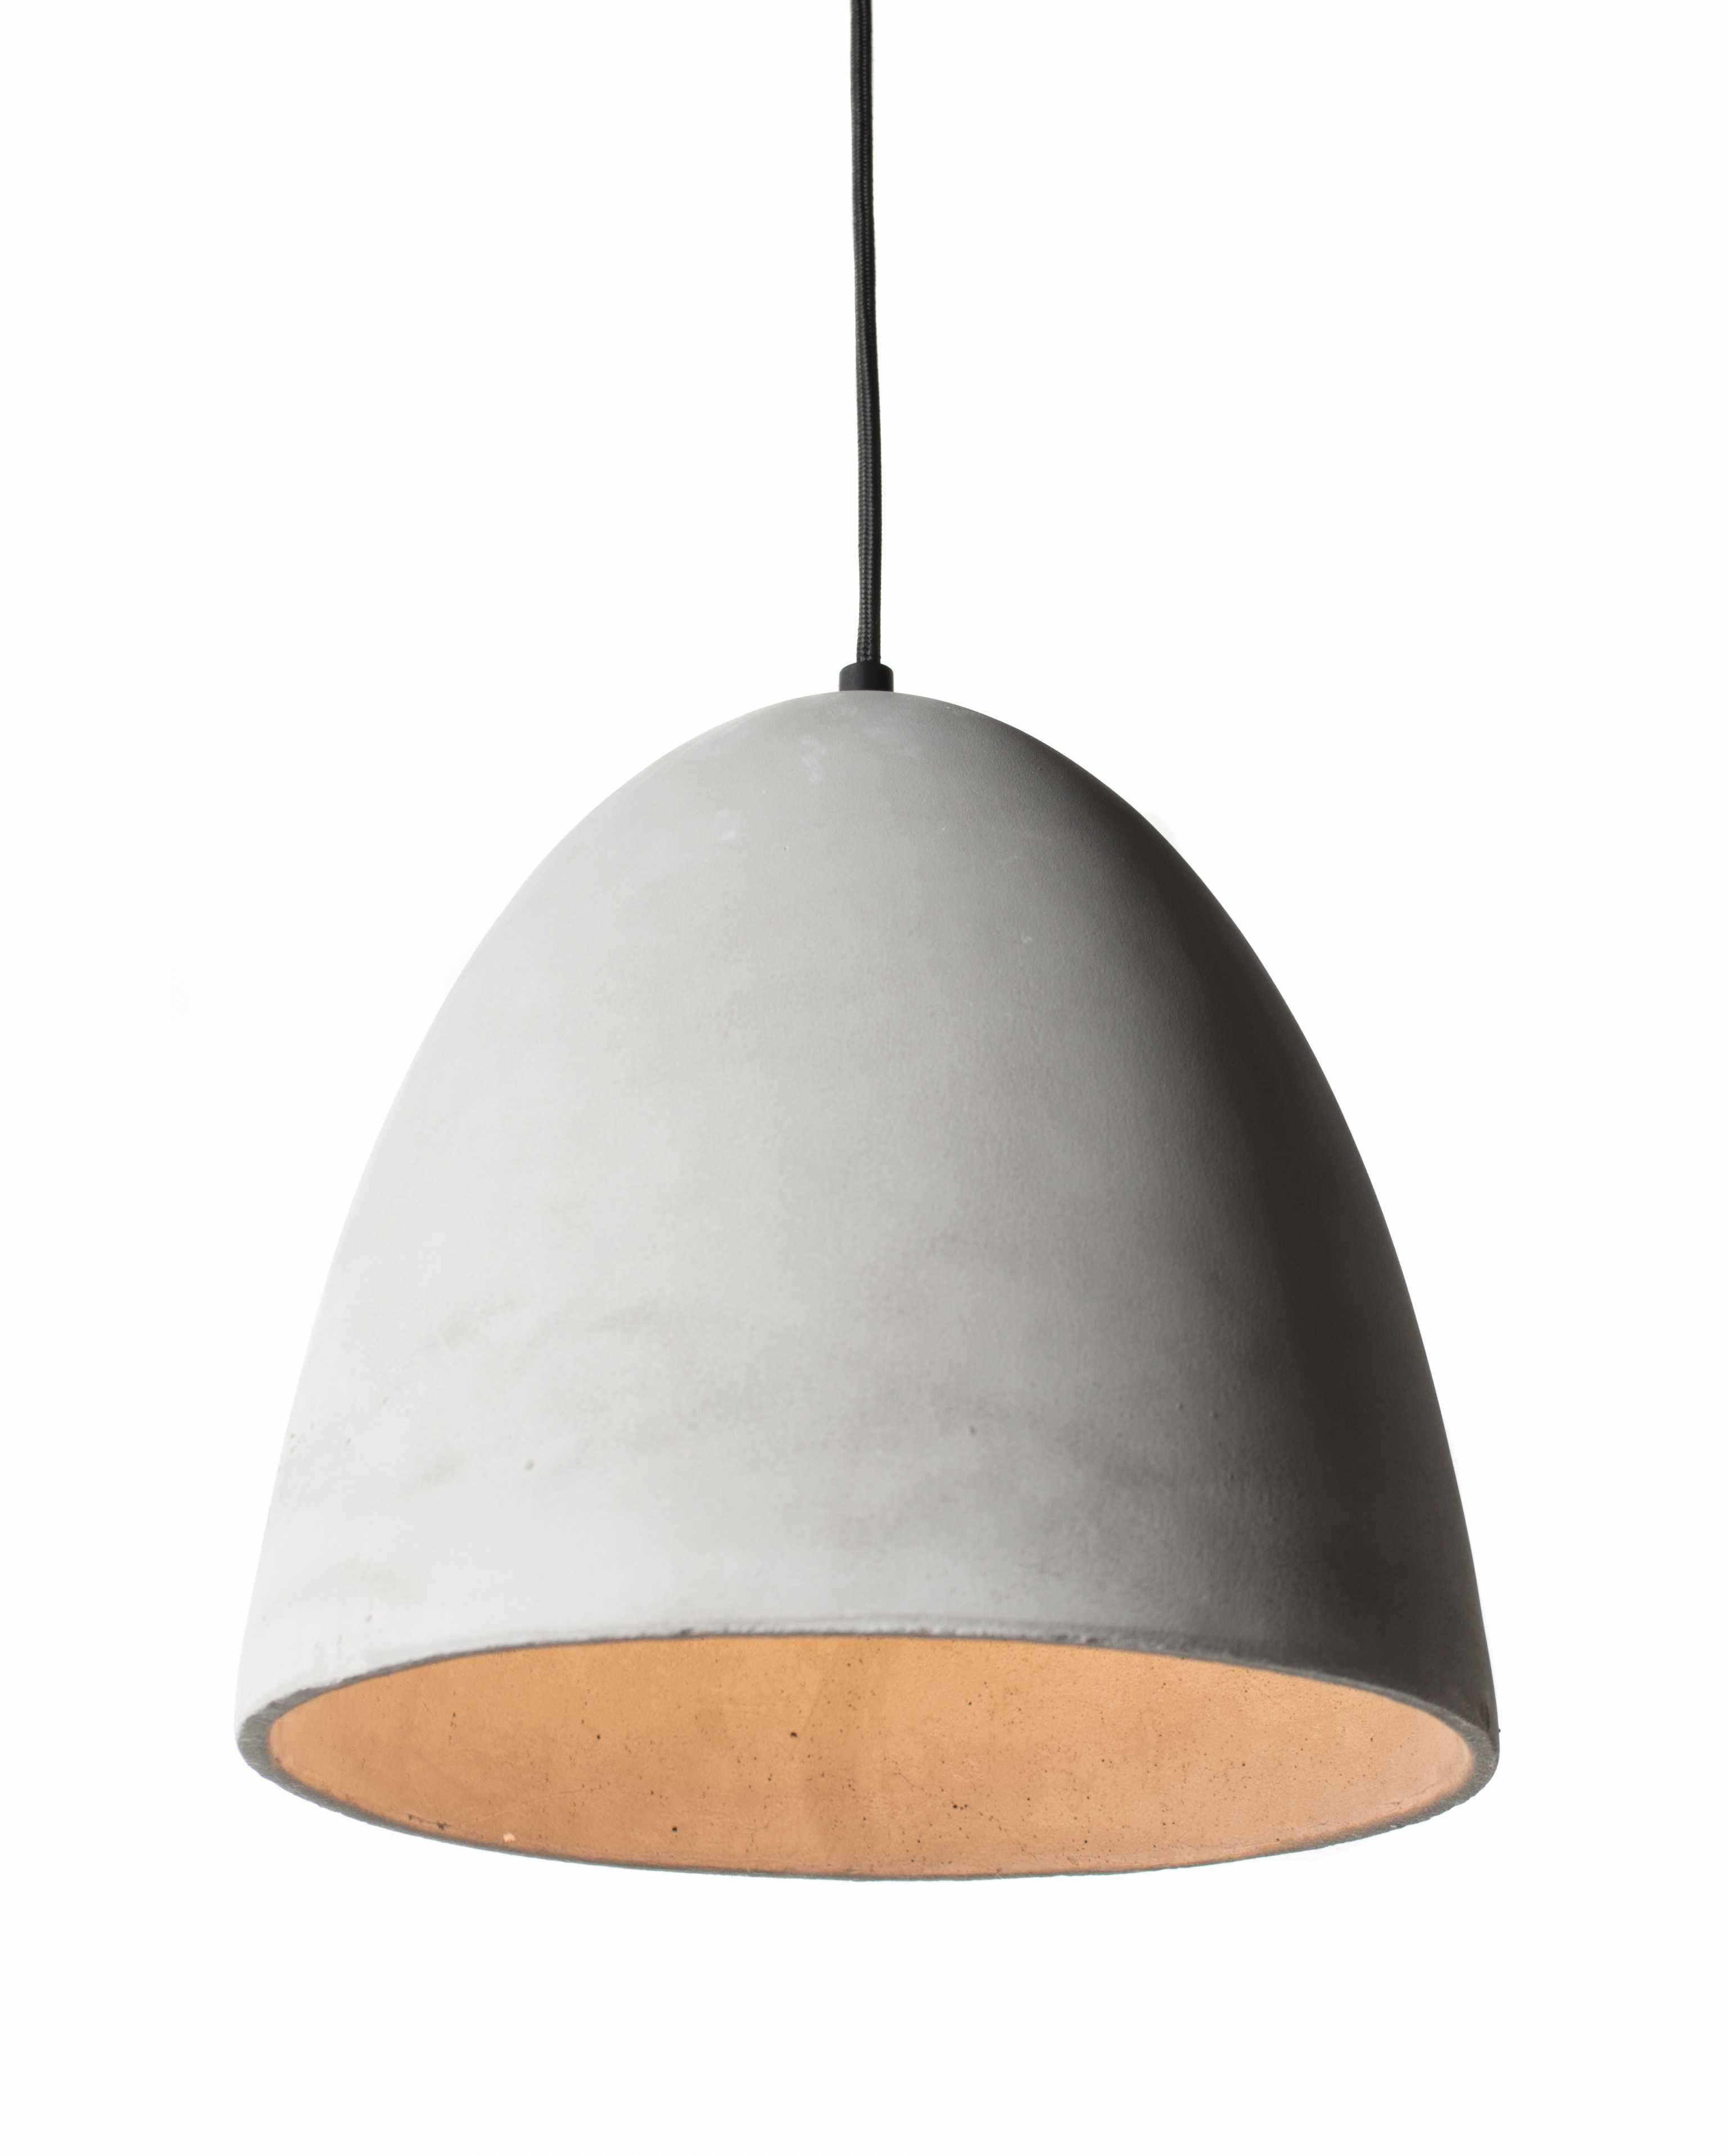 concrete brass messing lighting light ansicht q limited hell beton tisch product bcber pendant lampe